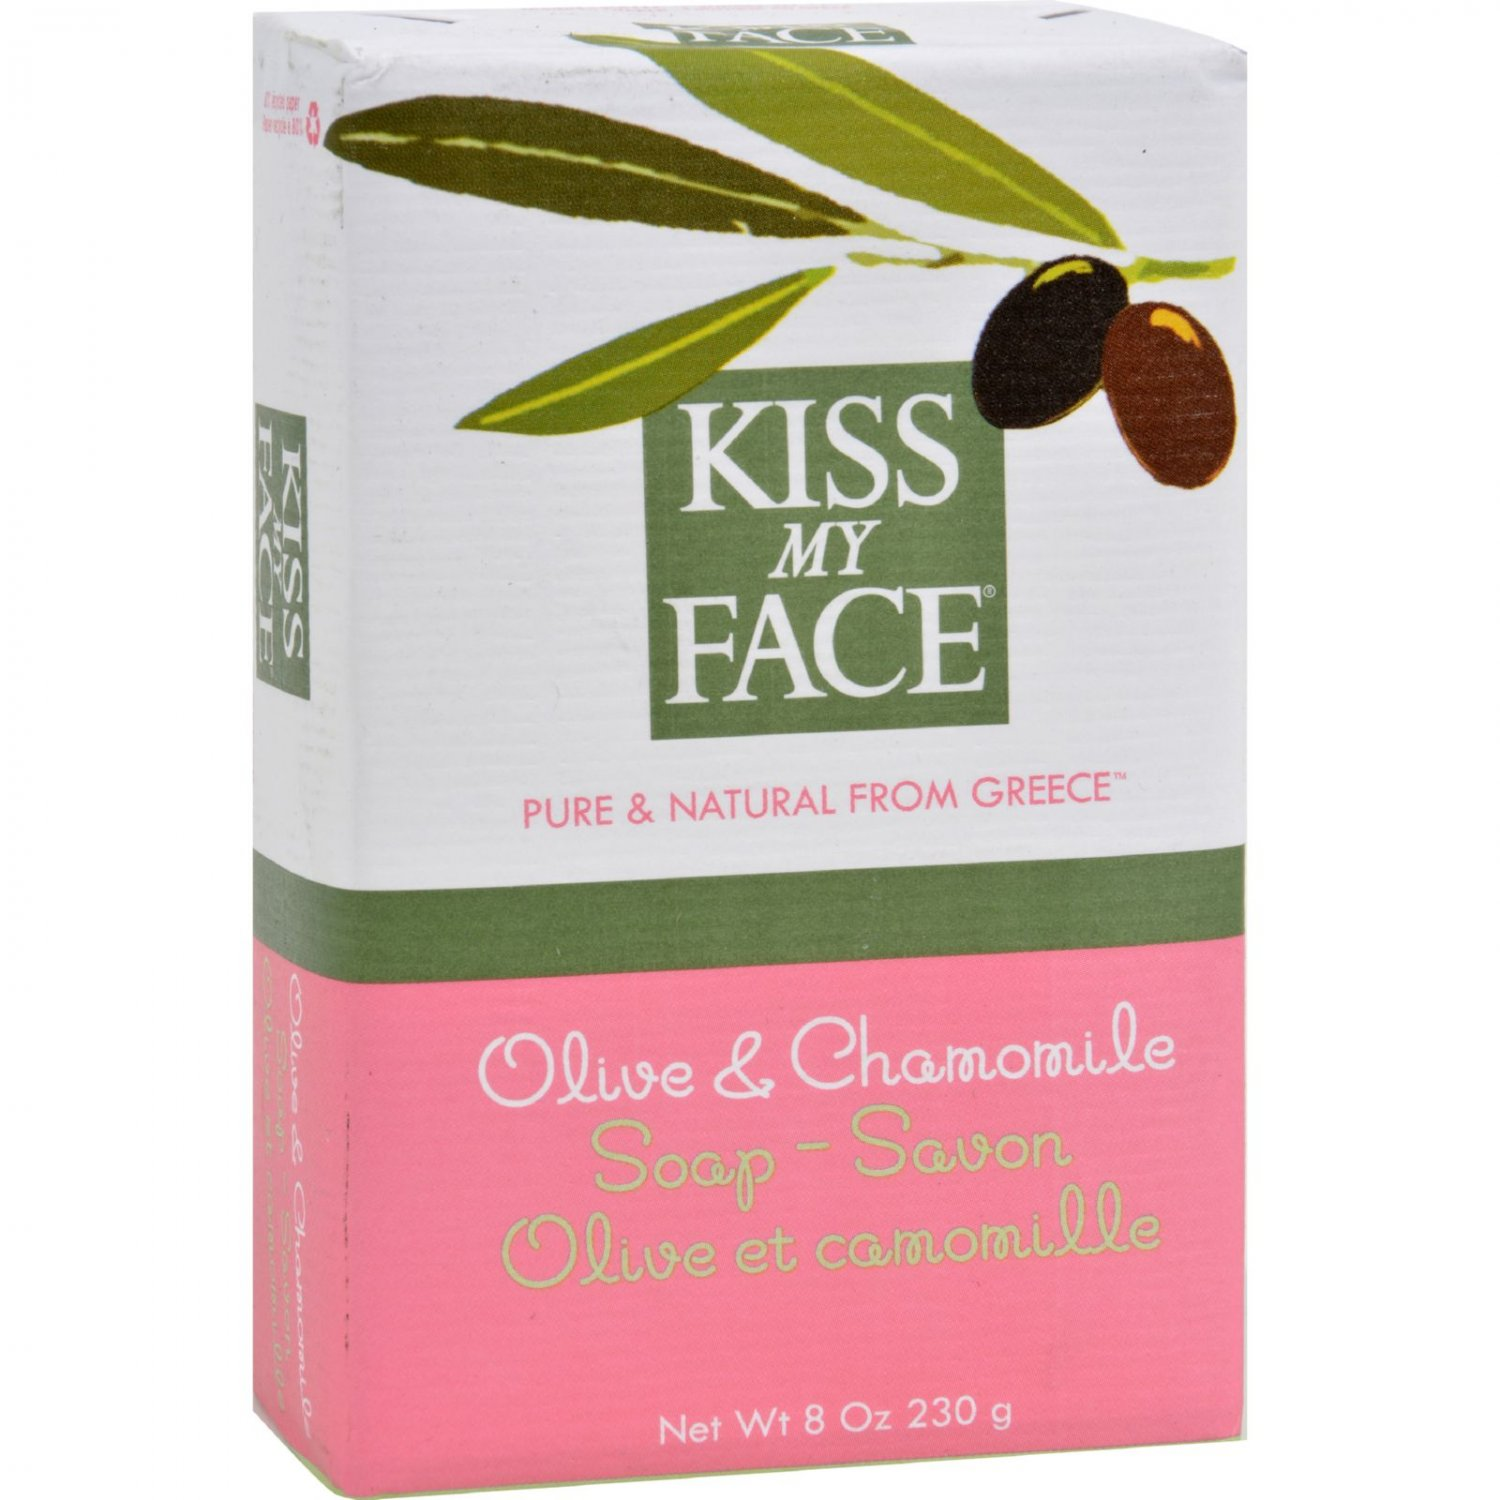 Kiss My Face Bar Soap Olive and Chamomile - 8 oz